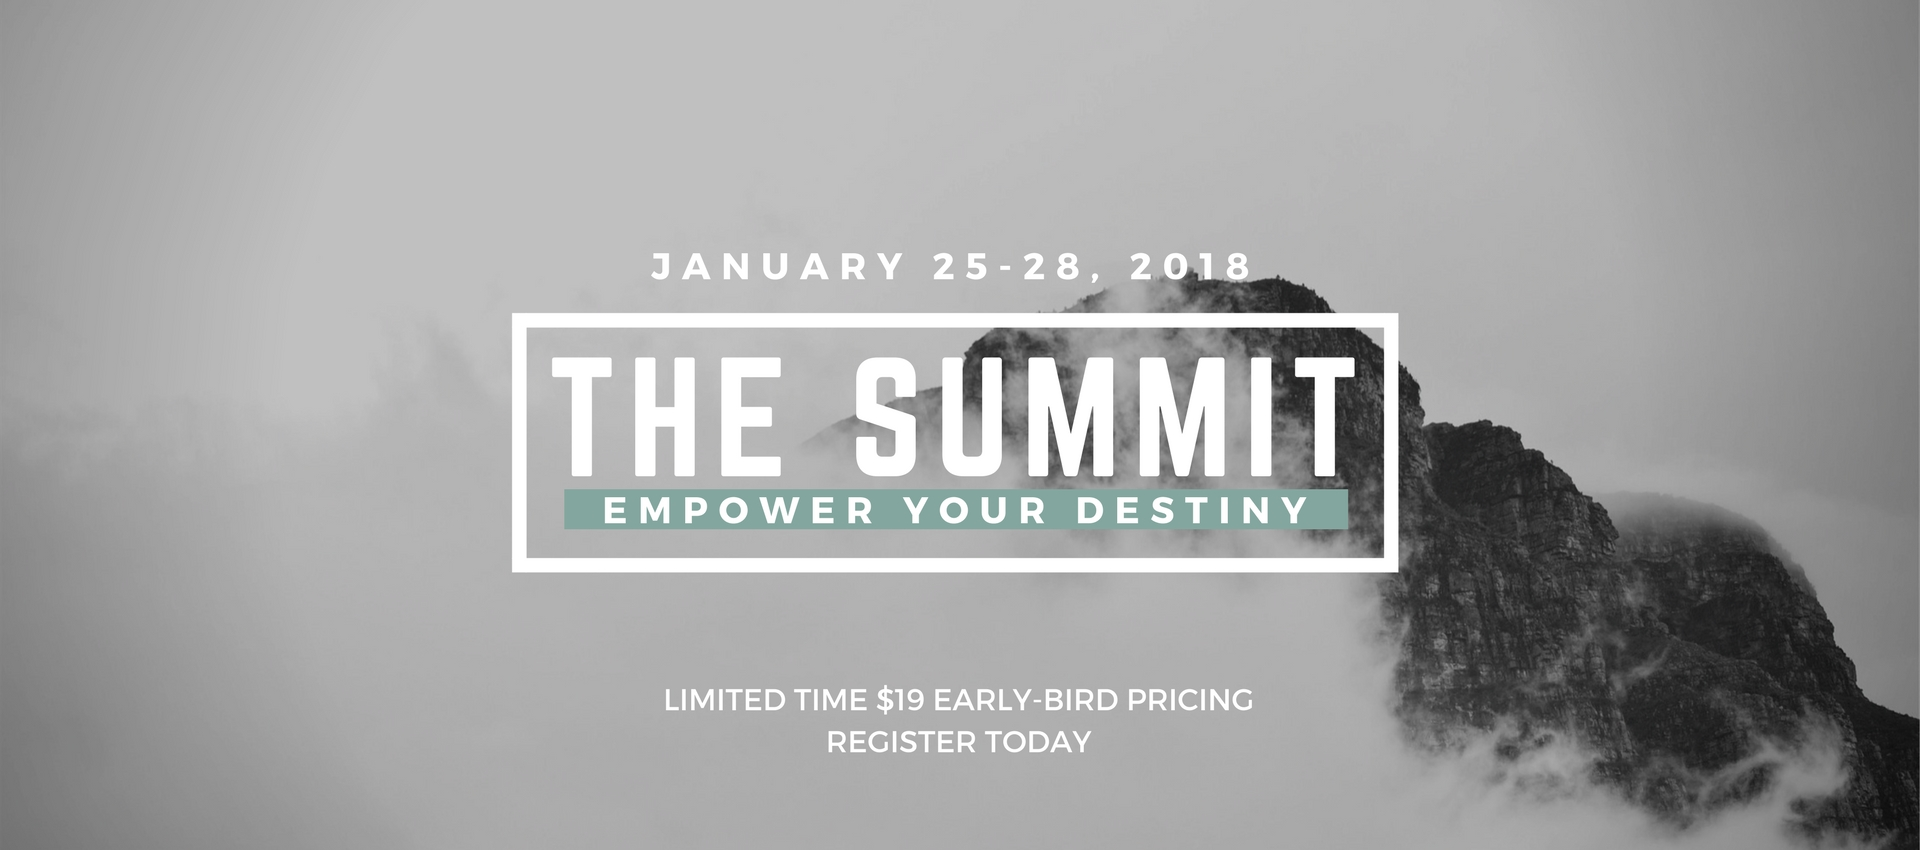 The Summit - Empower Your Destiny